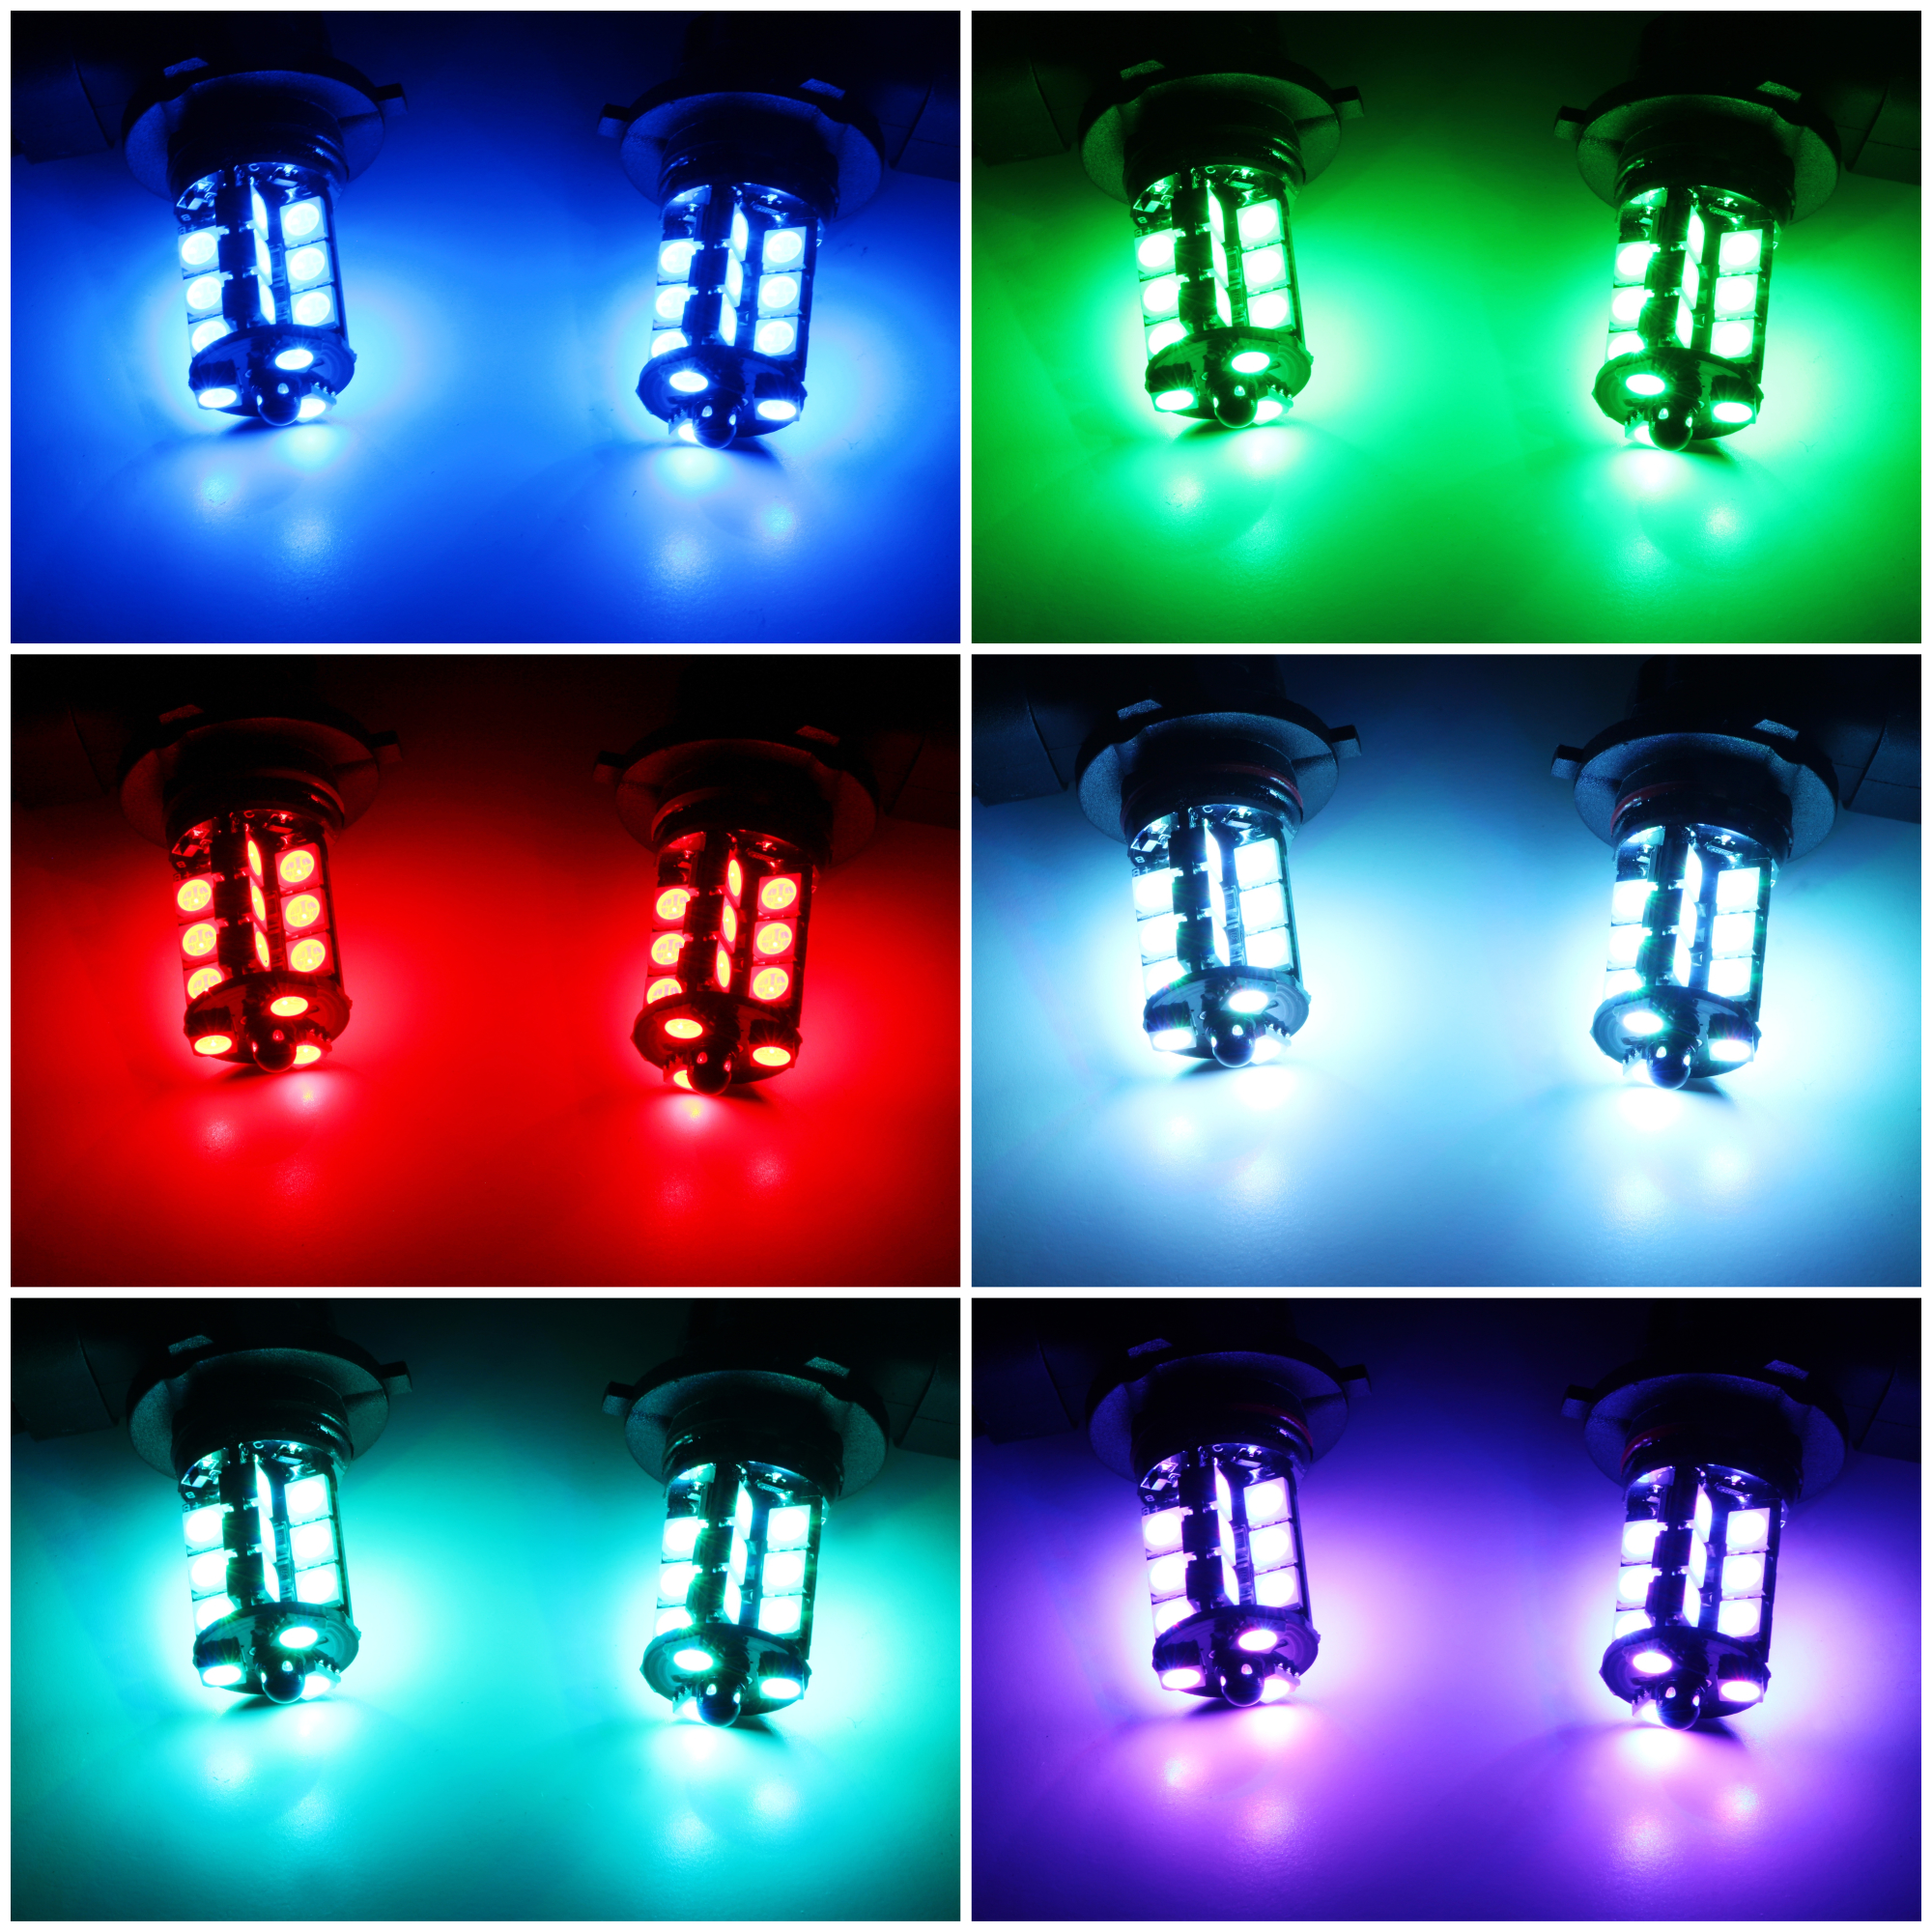 RGB LED Strips iJDMTOY 36W High Capacity 2-Output RGB Radio Frequency Wireless Remote Control w//Strobe Solid Lighting Features Compatible With RGB LED Applications Such As RGB Halo Rings etc